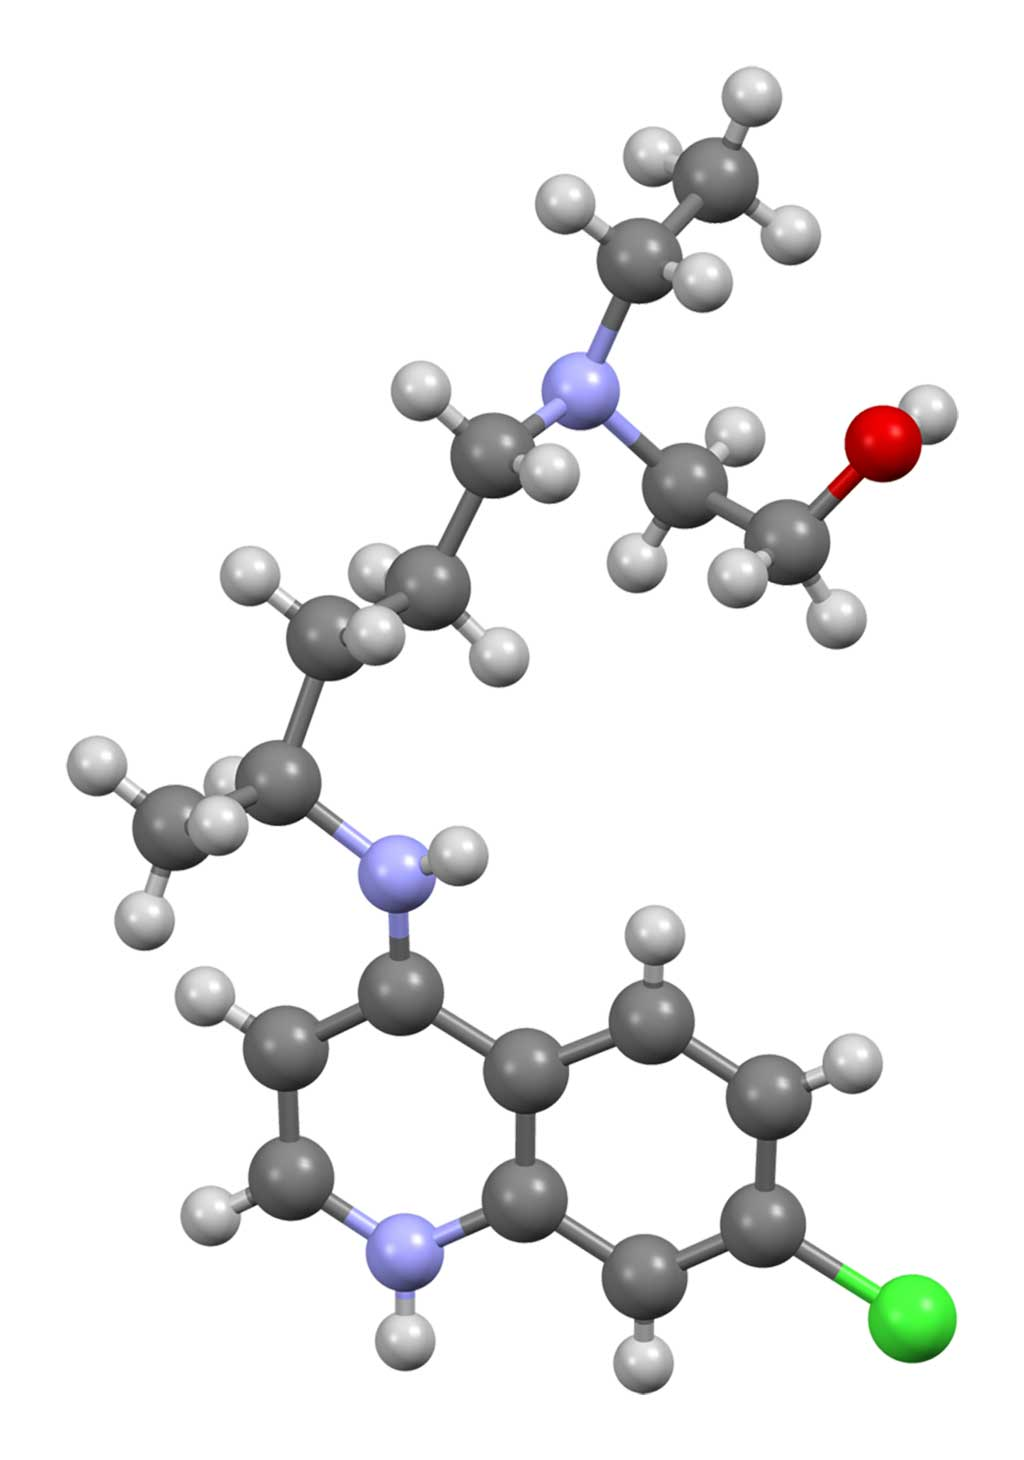 Image: Ball-and-stick model of a hydroxychloroquine molecule (Photo courtesy of Wikimedia Commons)